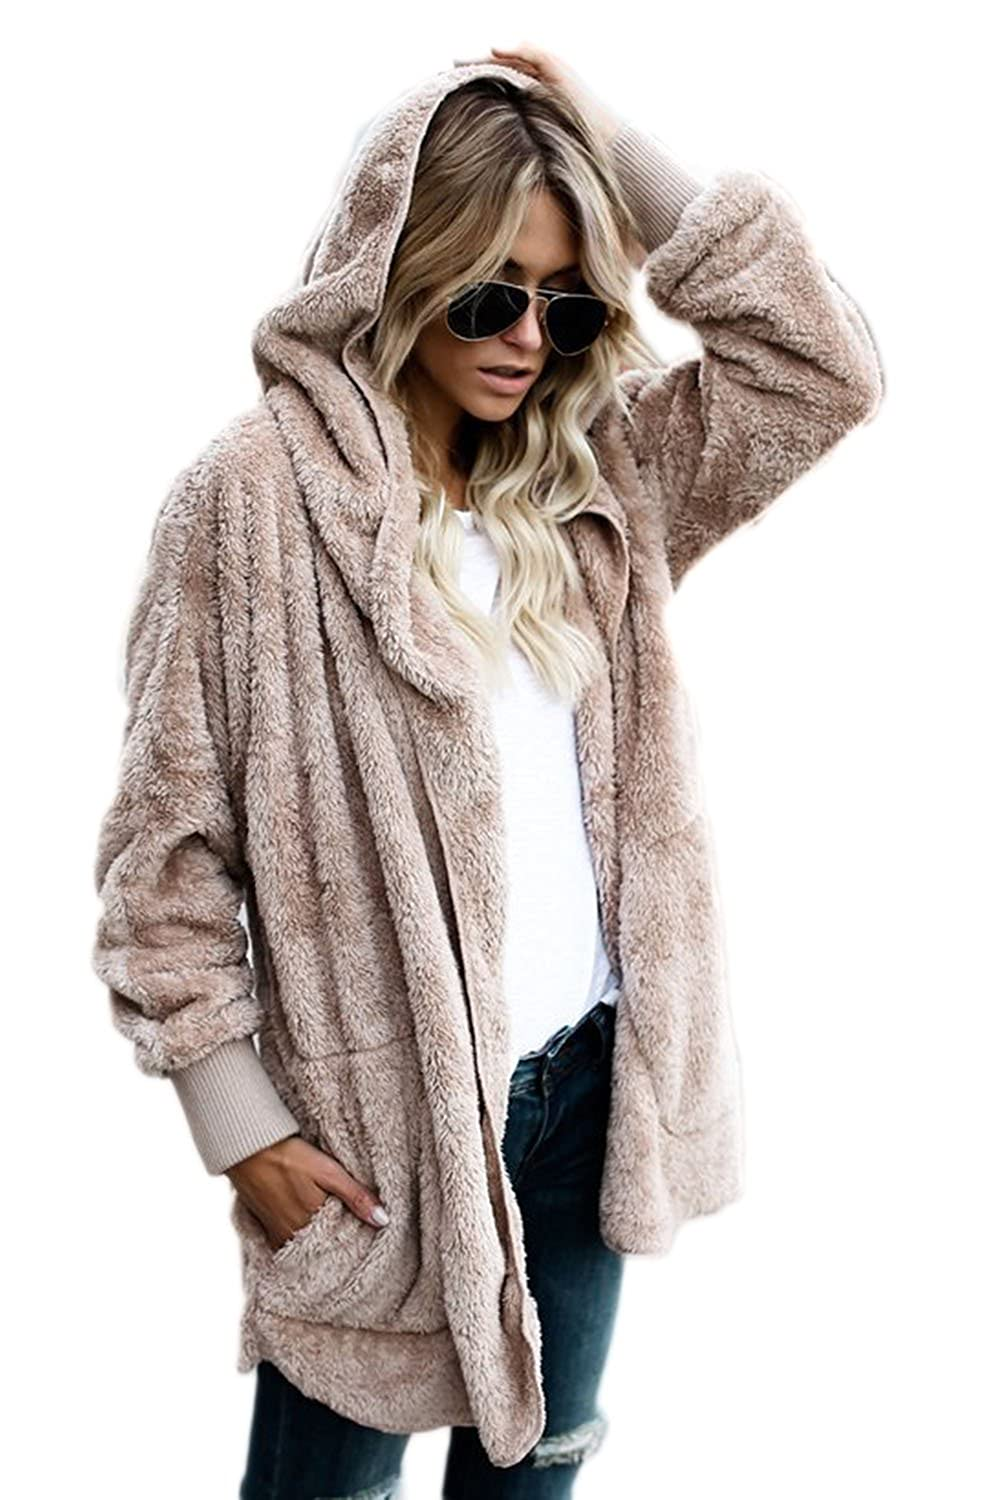 Jumojufol Women's Hoodie Thick Open Front Winter Fuzzy Jacket Cardigan Coat CATNFME8